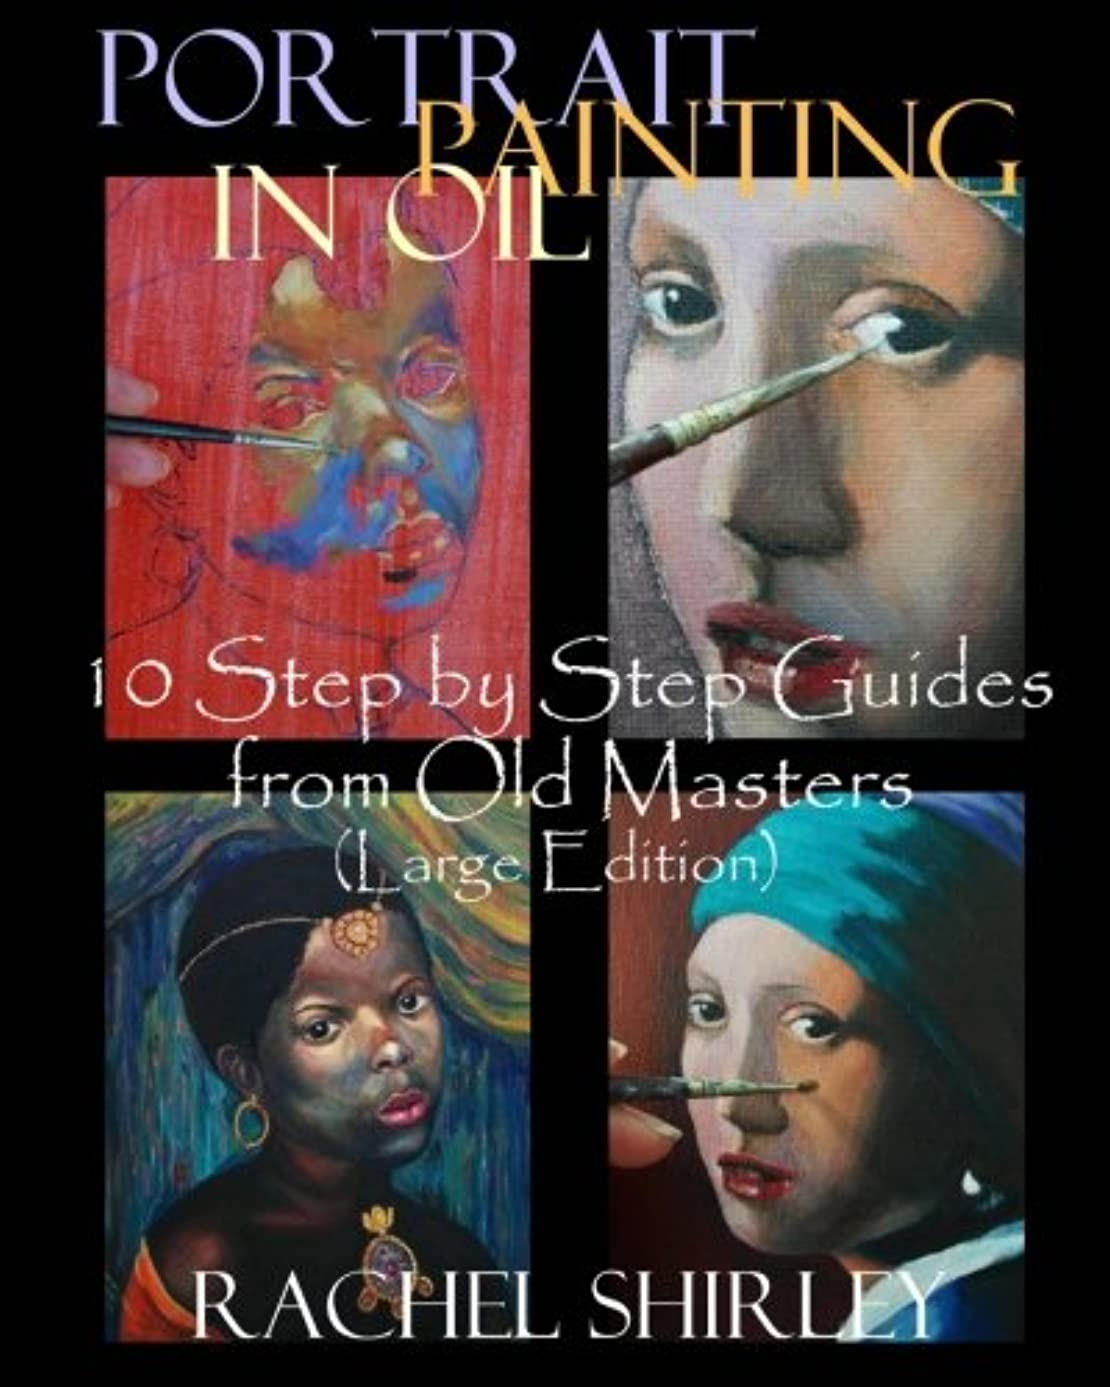 Portrait Painting in Oil 10 Step by Step Guides from Old Masters (Large Edition)